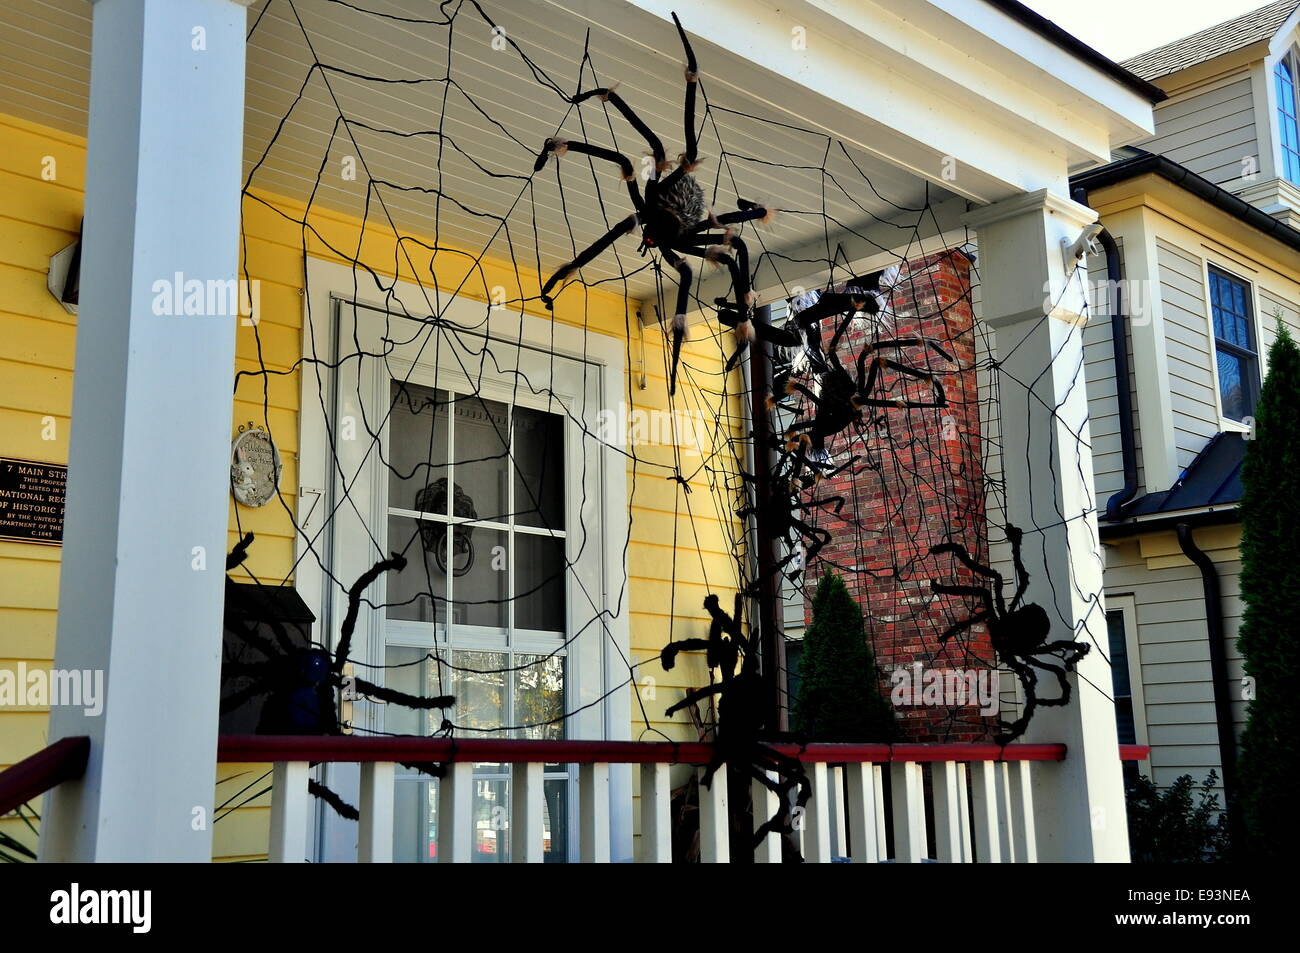 cold spring ny halloween spider decorations hang from the porch of a 19th century home on main street in the lower village